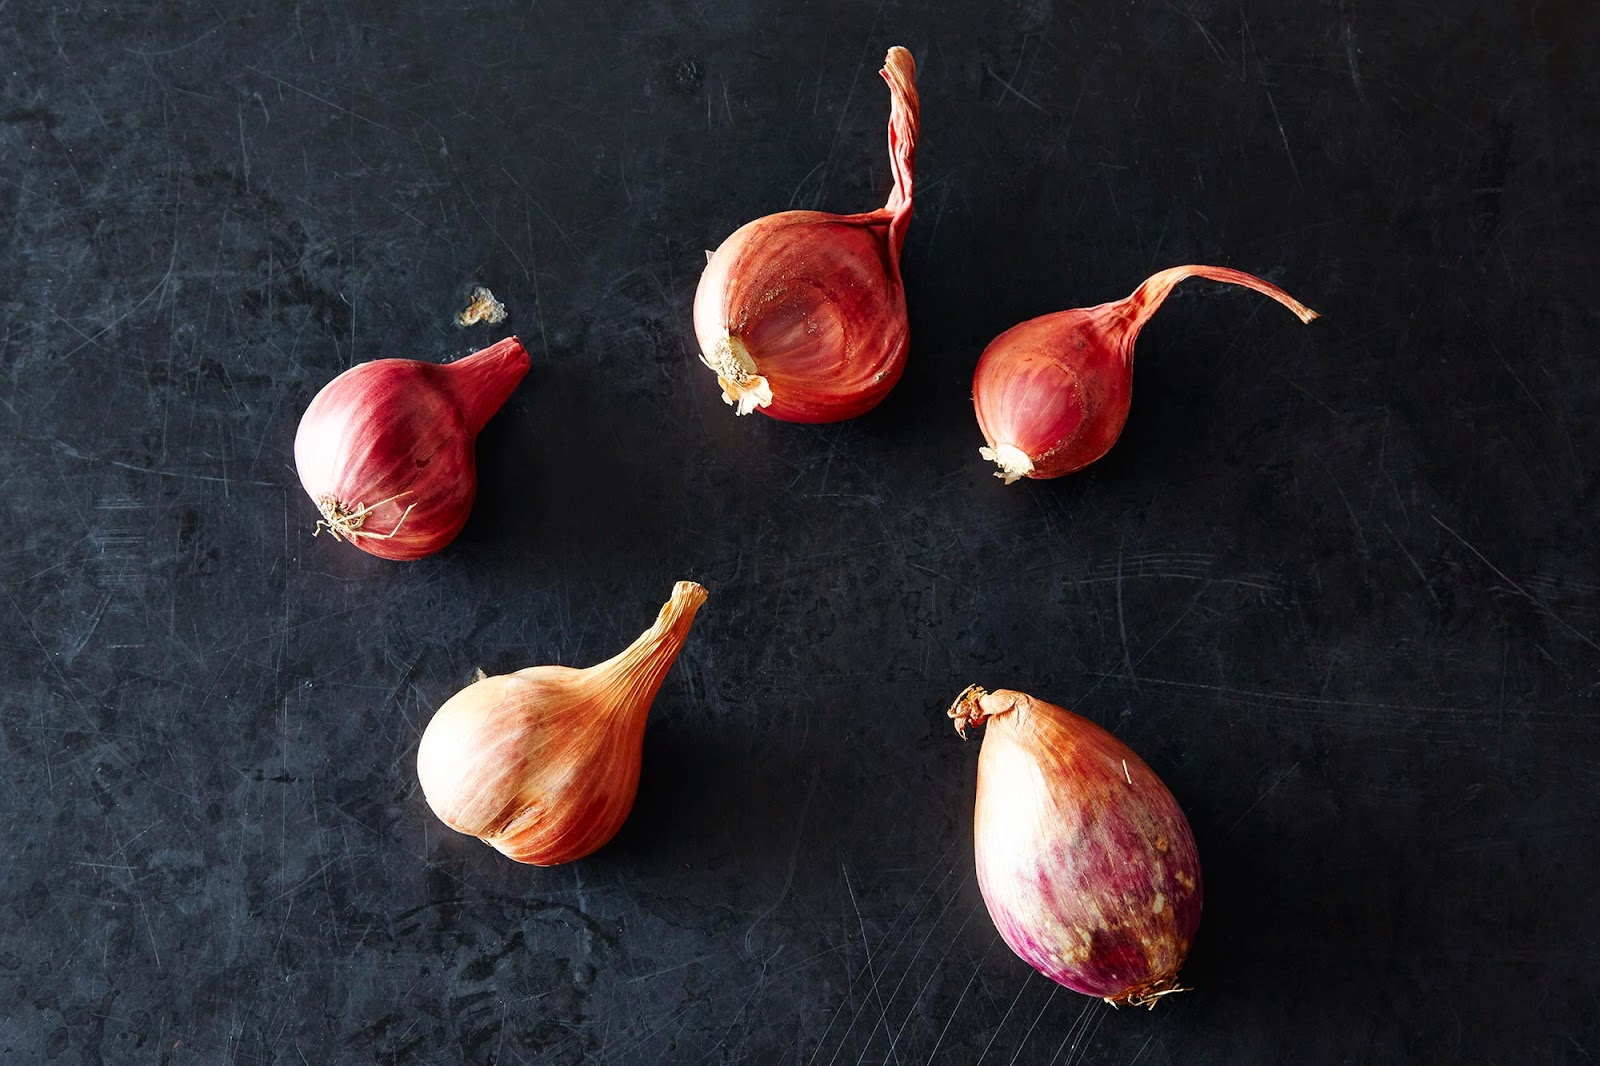 https://food52.com/blog/11260-shallots-and-our-5-favorite-ways-to-use-them